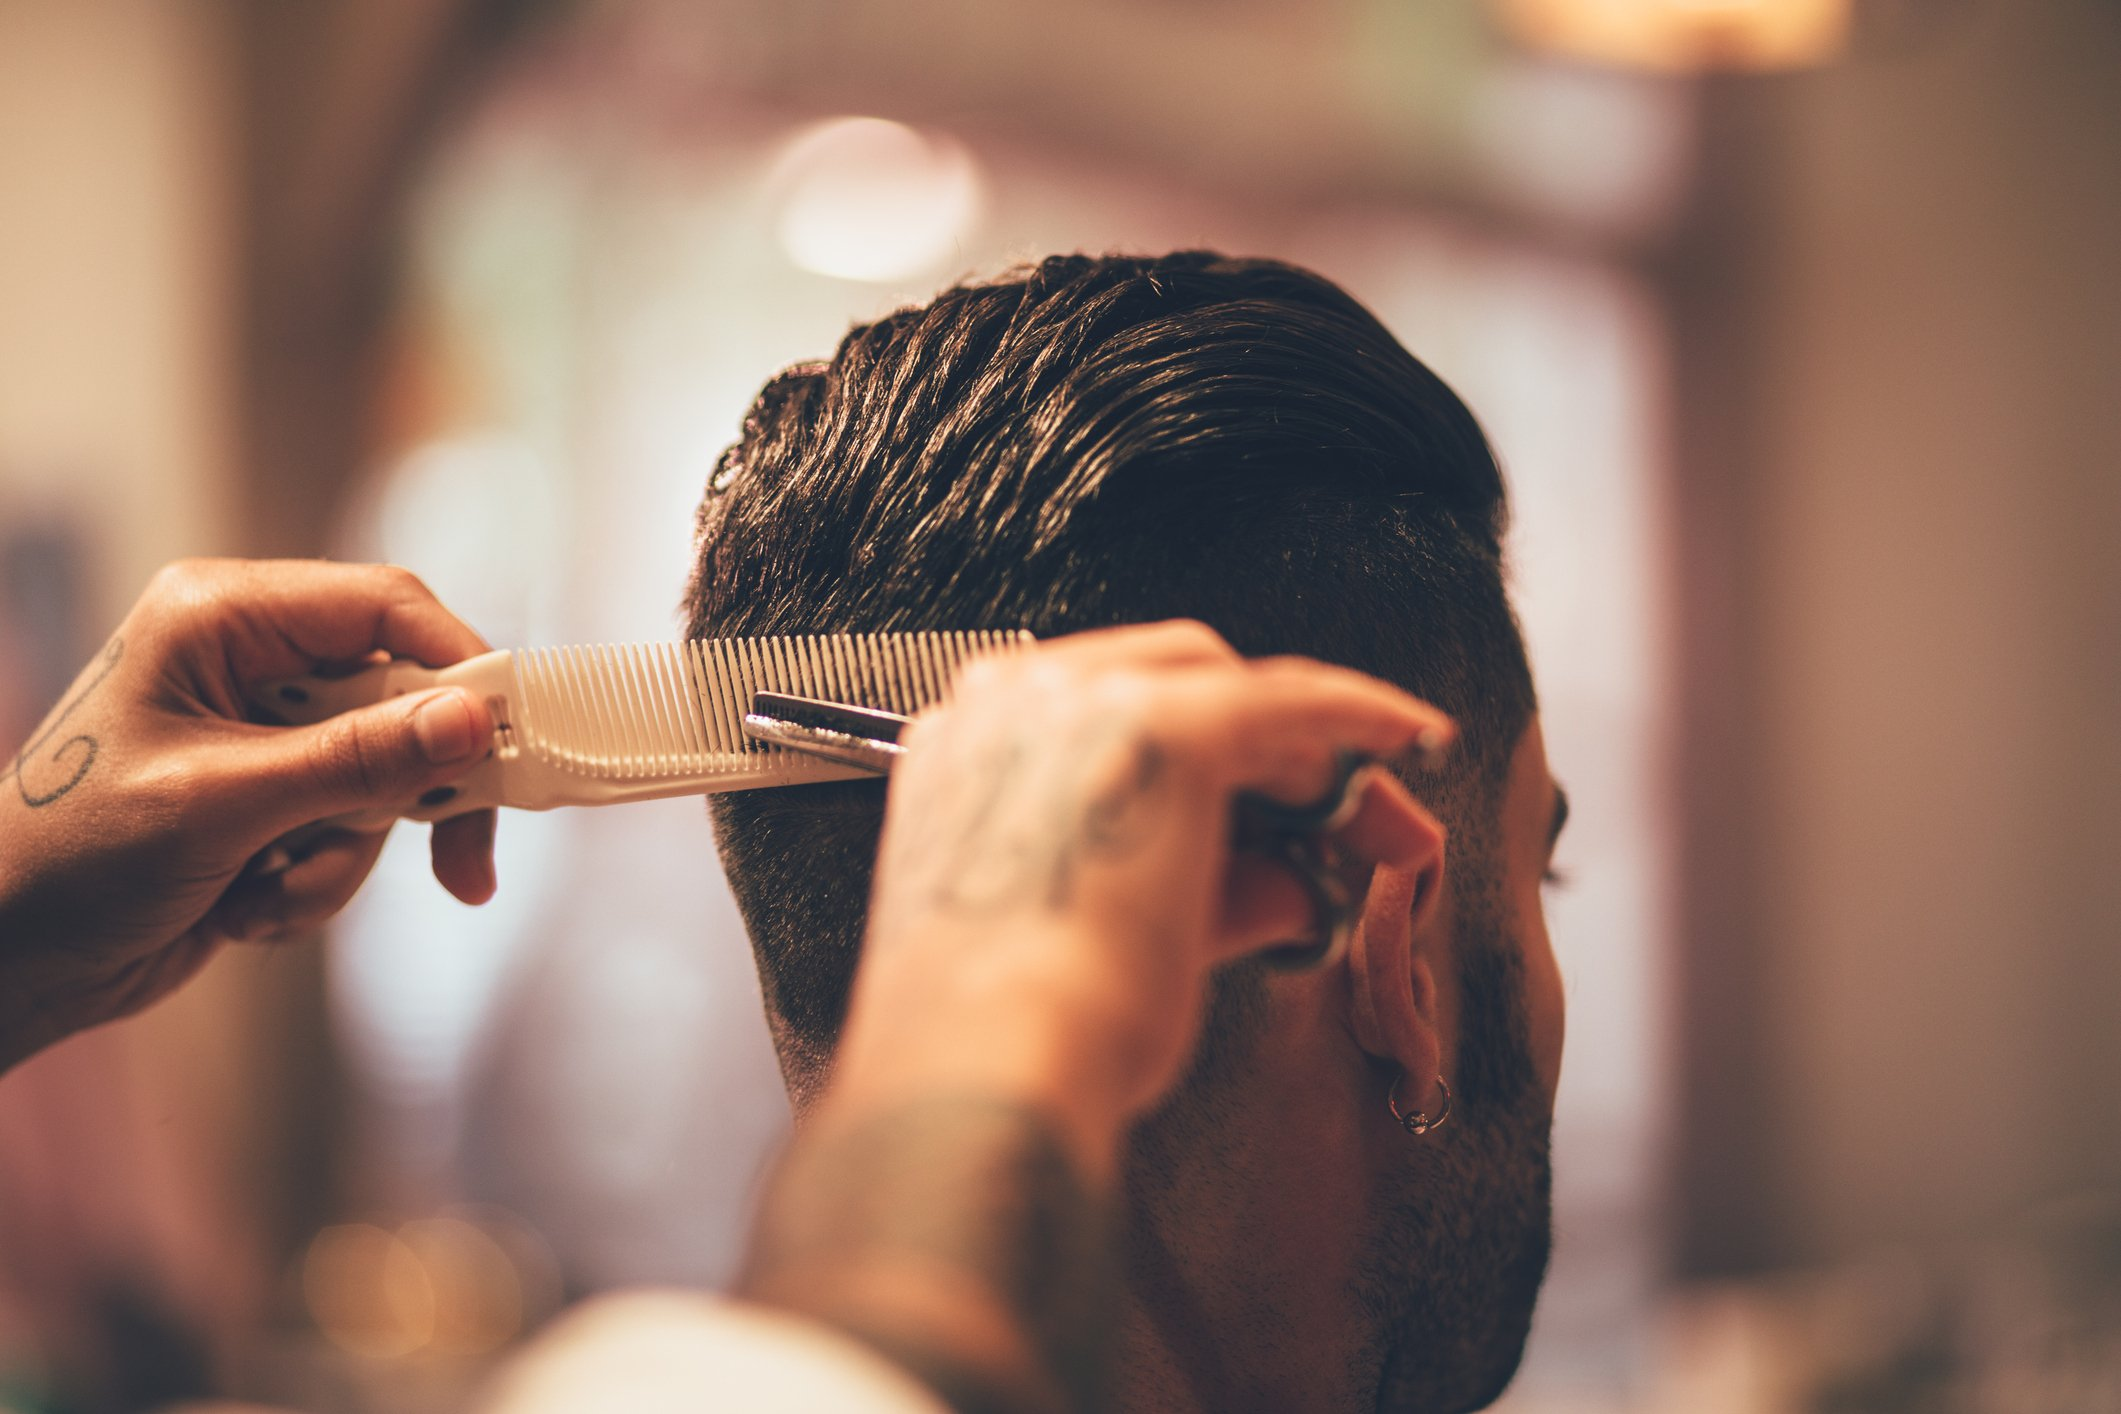 A close-up photo of a hairstylist cutting a man's hair.   Photo: Getty Images